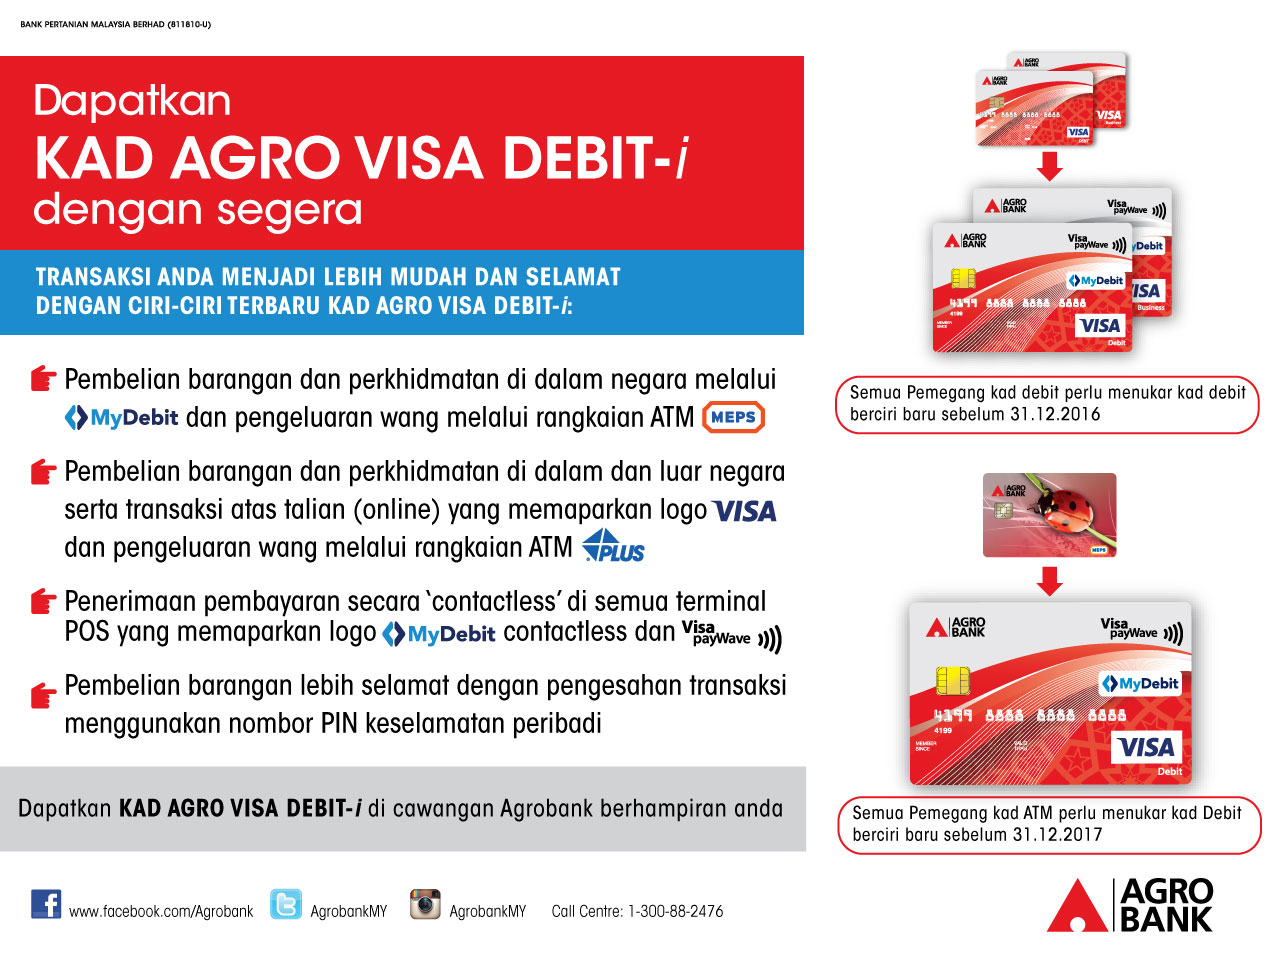 Agro visa business debit card i agrobank agro visa business debit card i the card that balances your business and lifestyle needs both domestic and internationally it helps business thrive with a colourmoves Choice Image